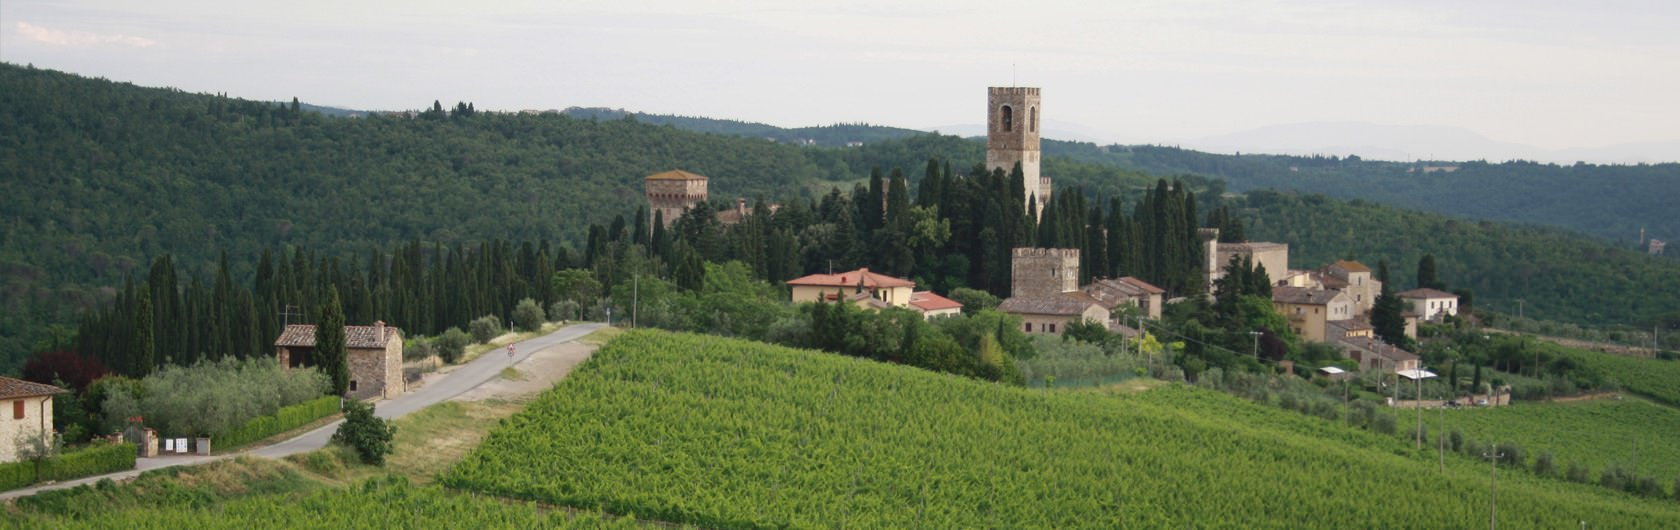 2. Central Italy: Tuscany 2 the Chianti, from Florence to Siena